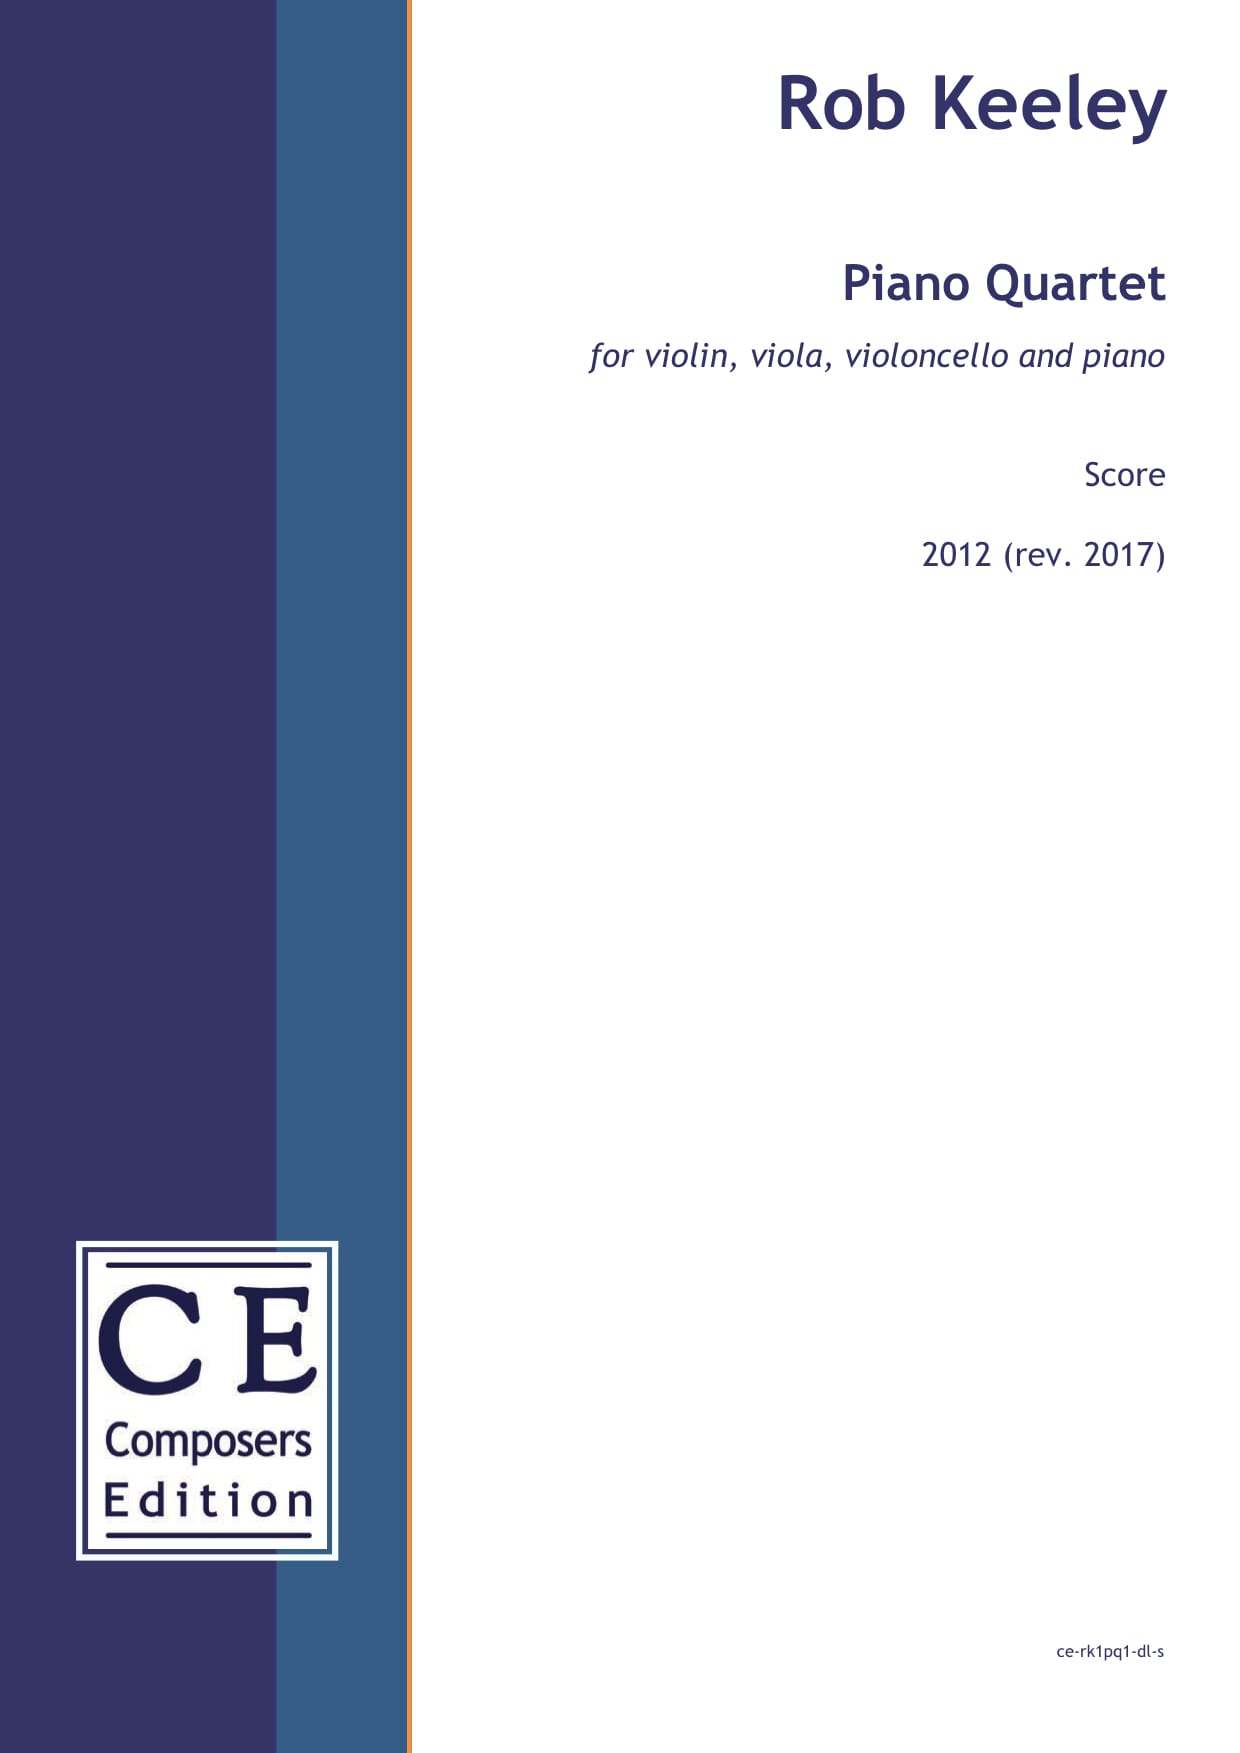 Rob Keeley: Piano Quartet for violin, viola, violoncello and piano